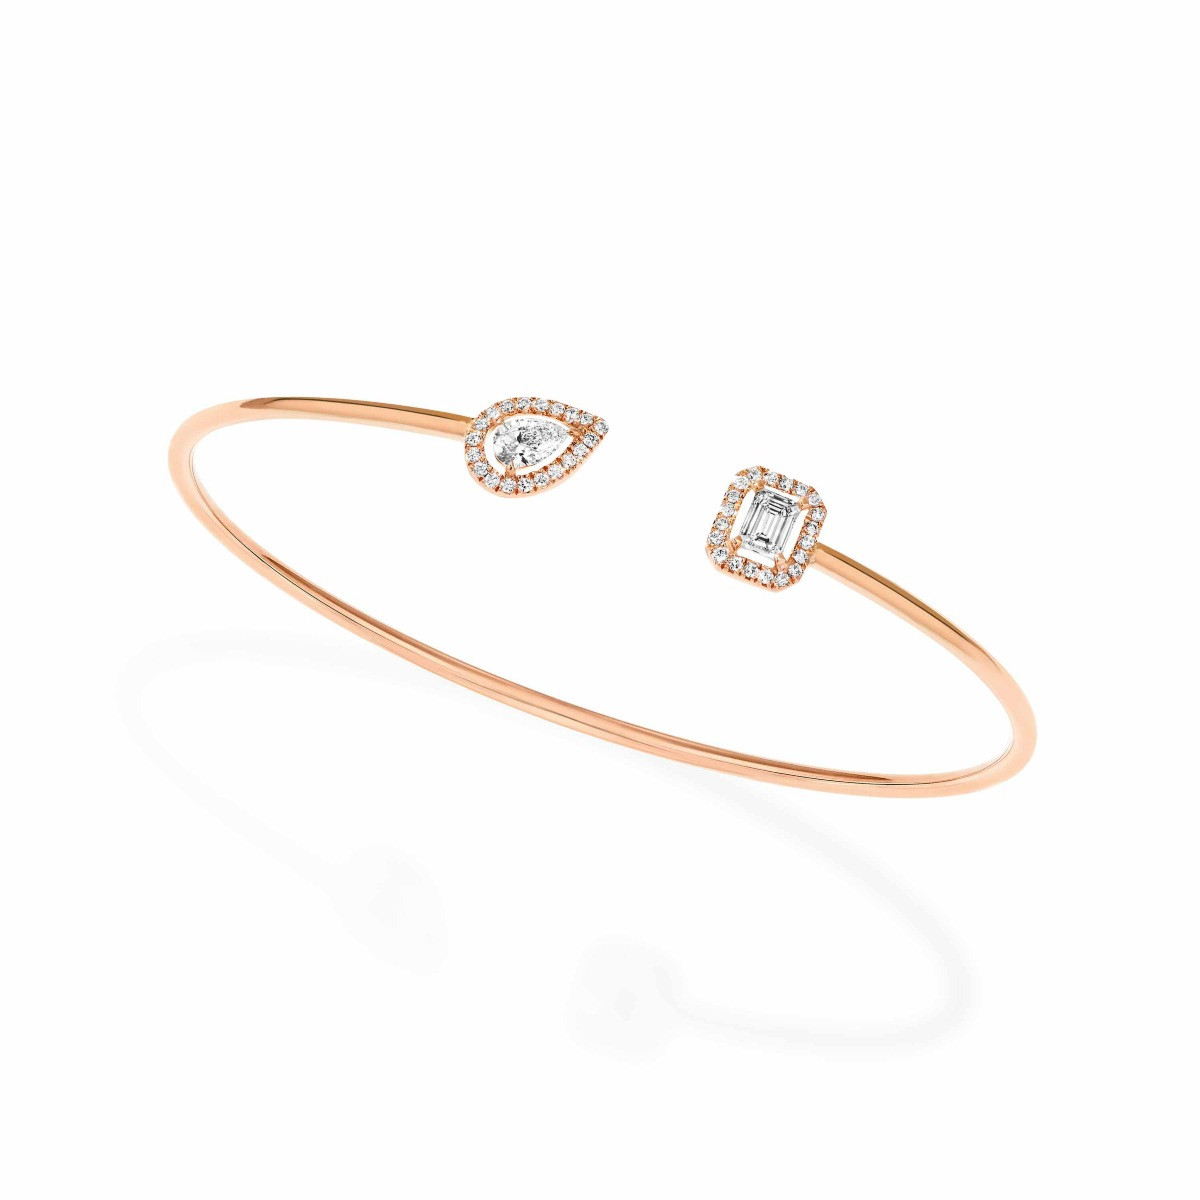 Messika My Twin Toi & Moi Thin Bangle in 18K Gold tilted view